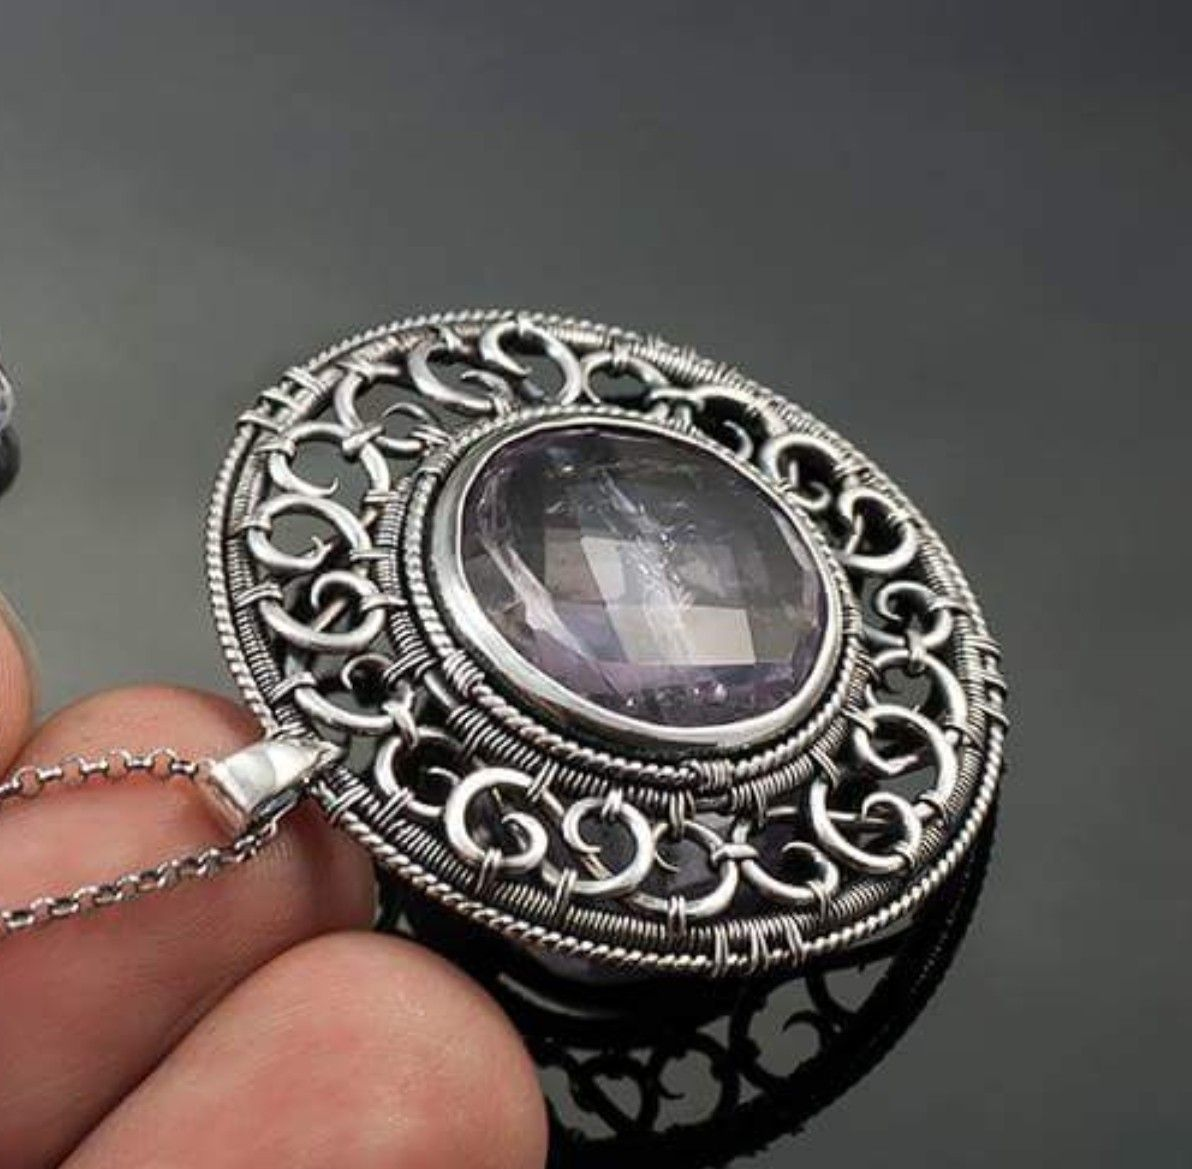 Pin by HroweJewelry on necklaces / pendants   Pinterest   Wire ...